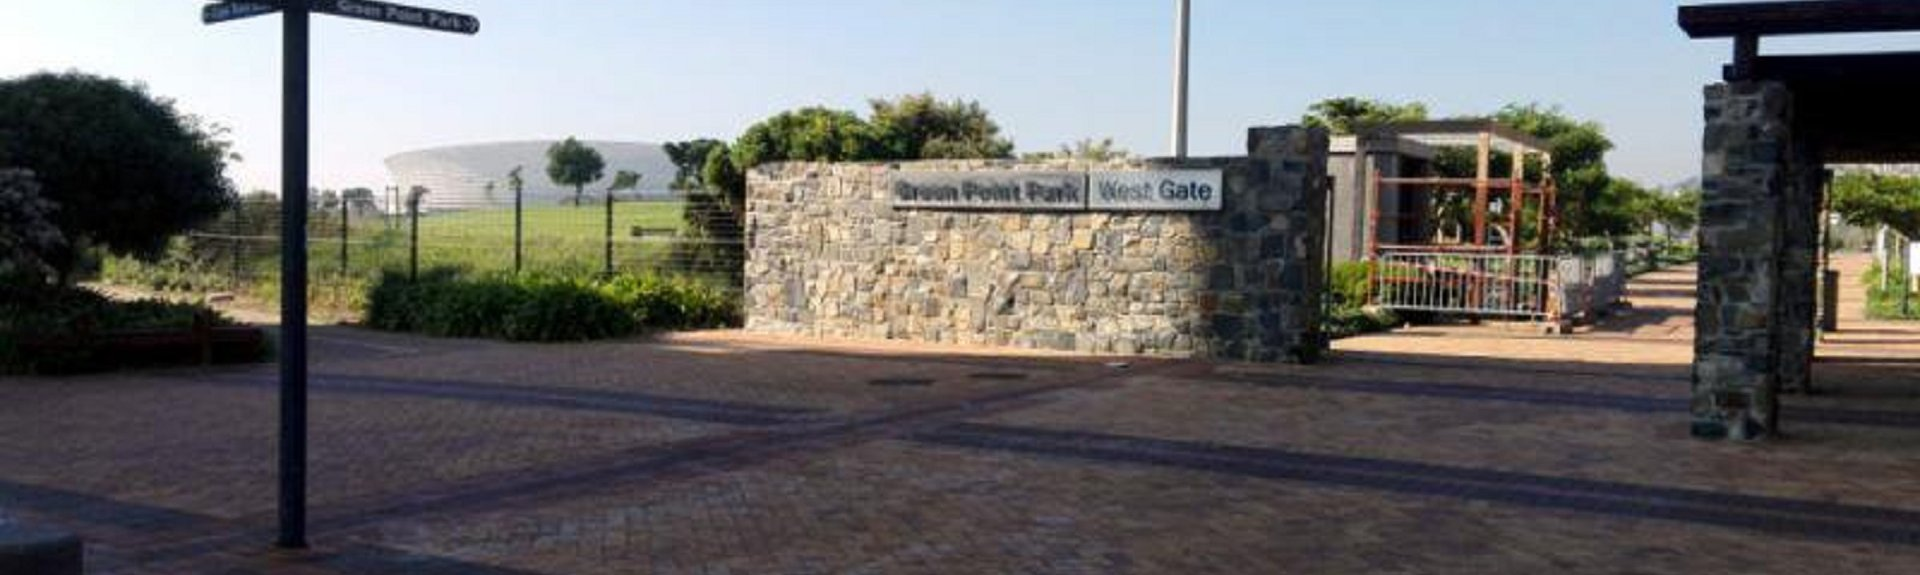 Green Point Urban Park | Cape Town | Things to do With Kids